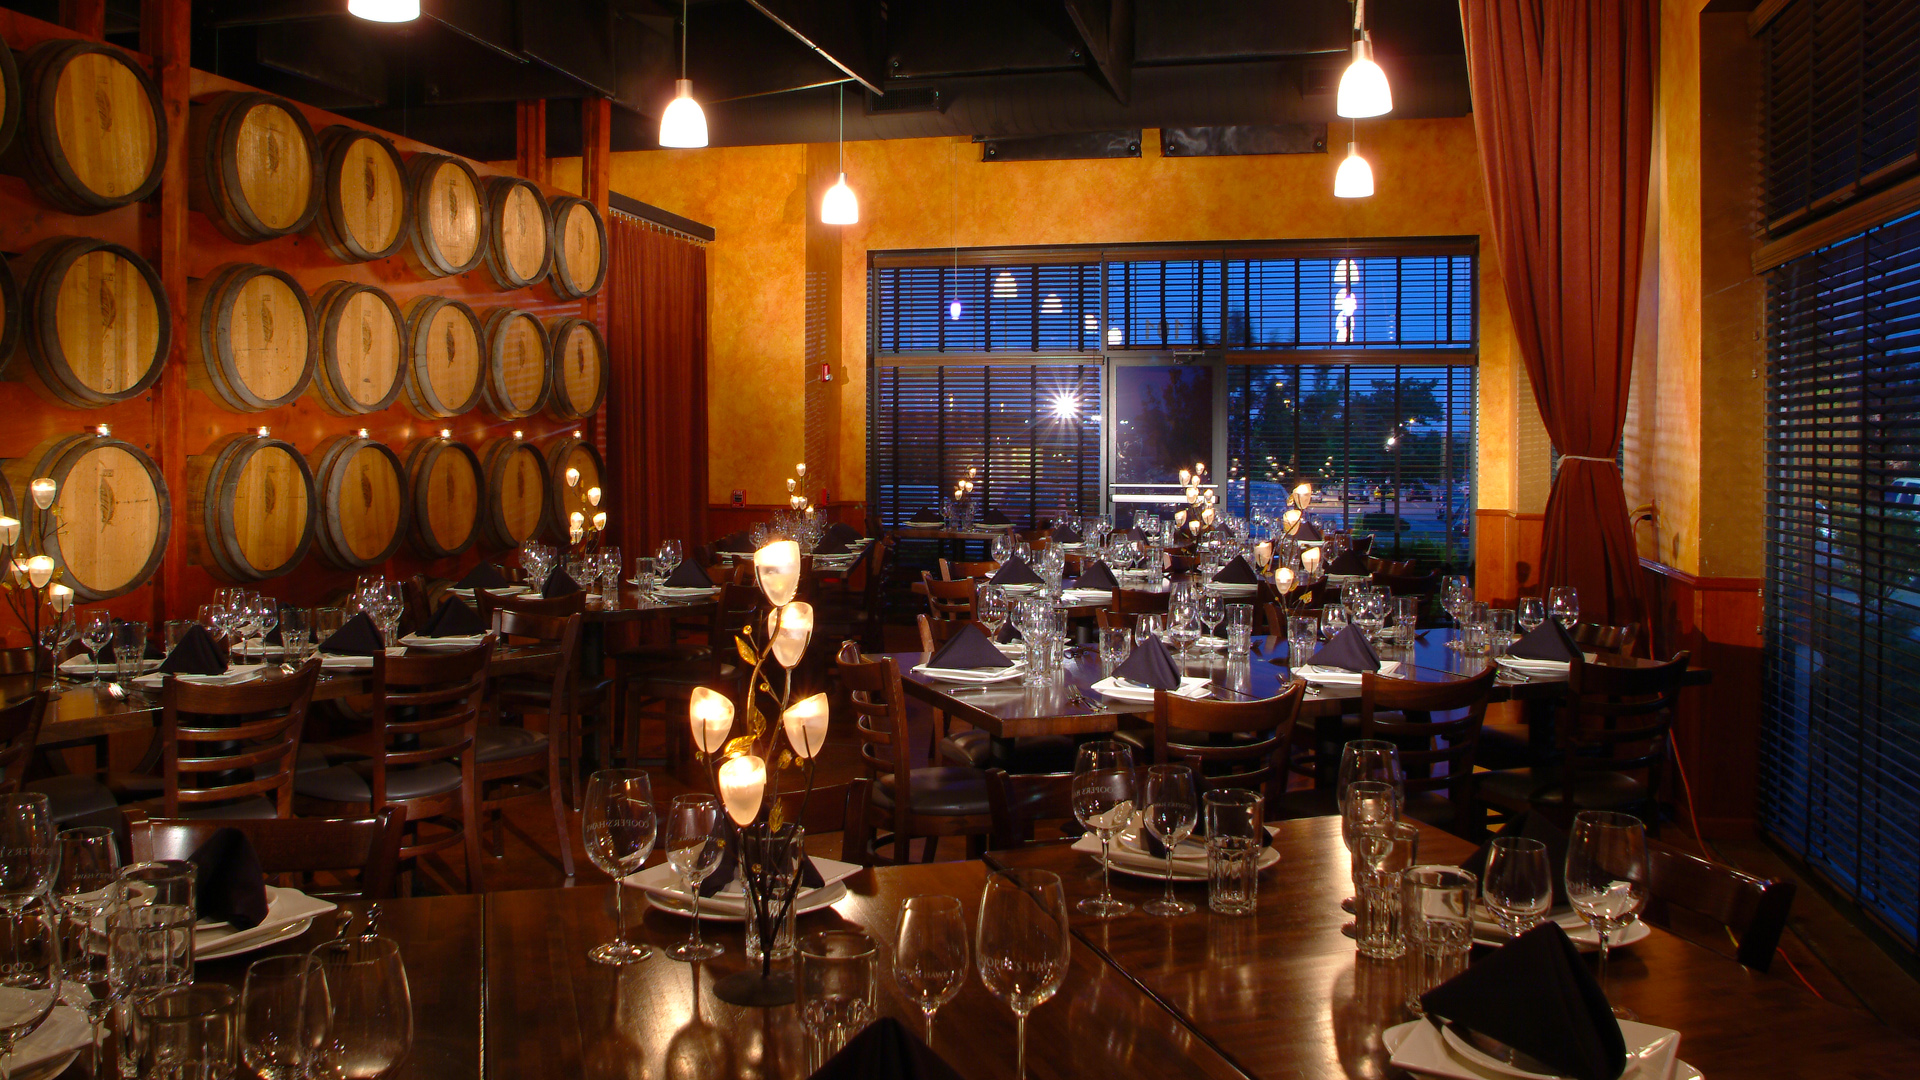 Cooper S Hawk Winery Restaurant Orland Park Enjoy Illinois